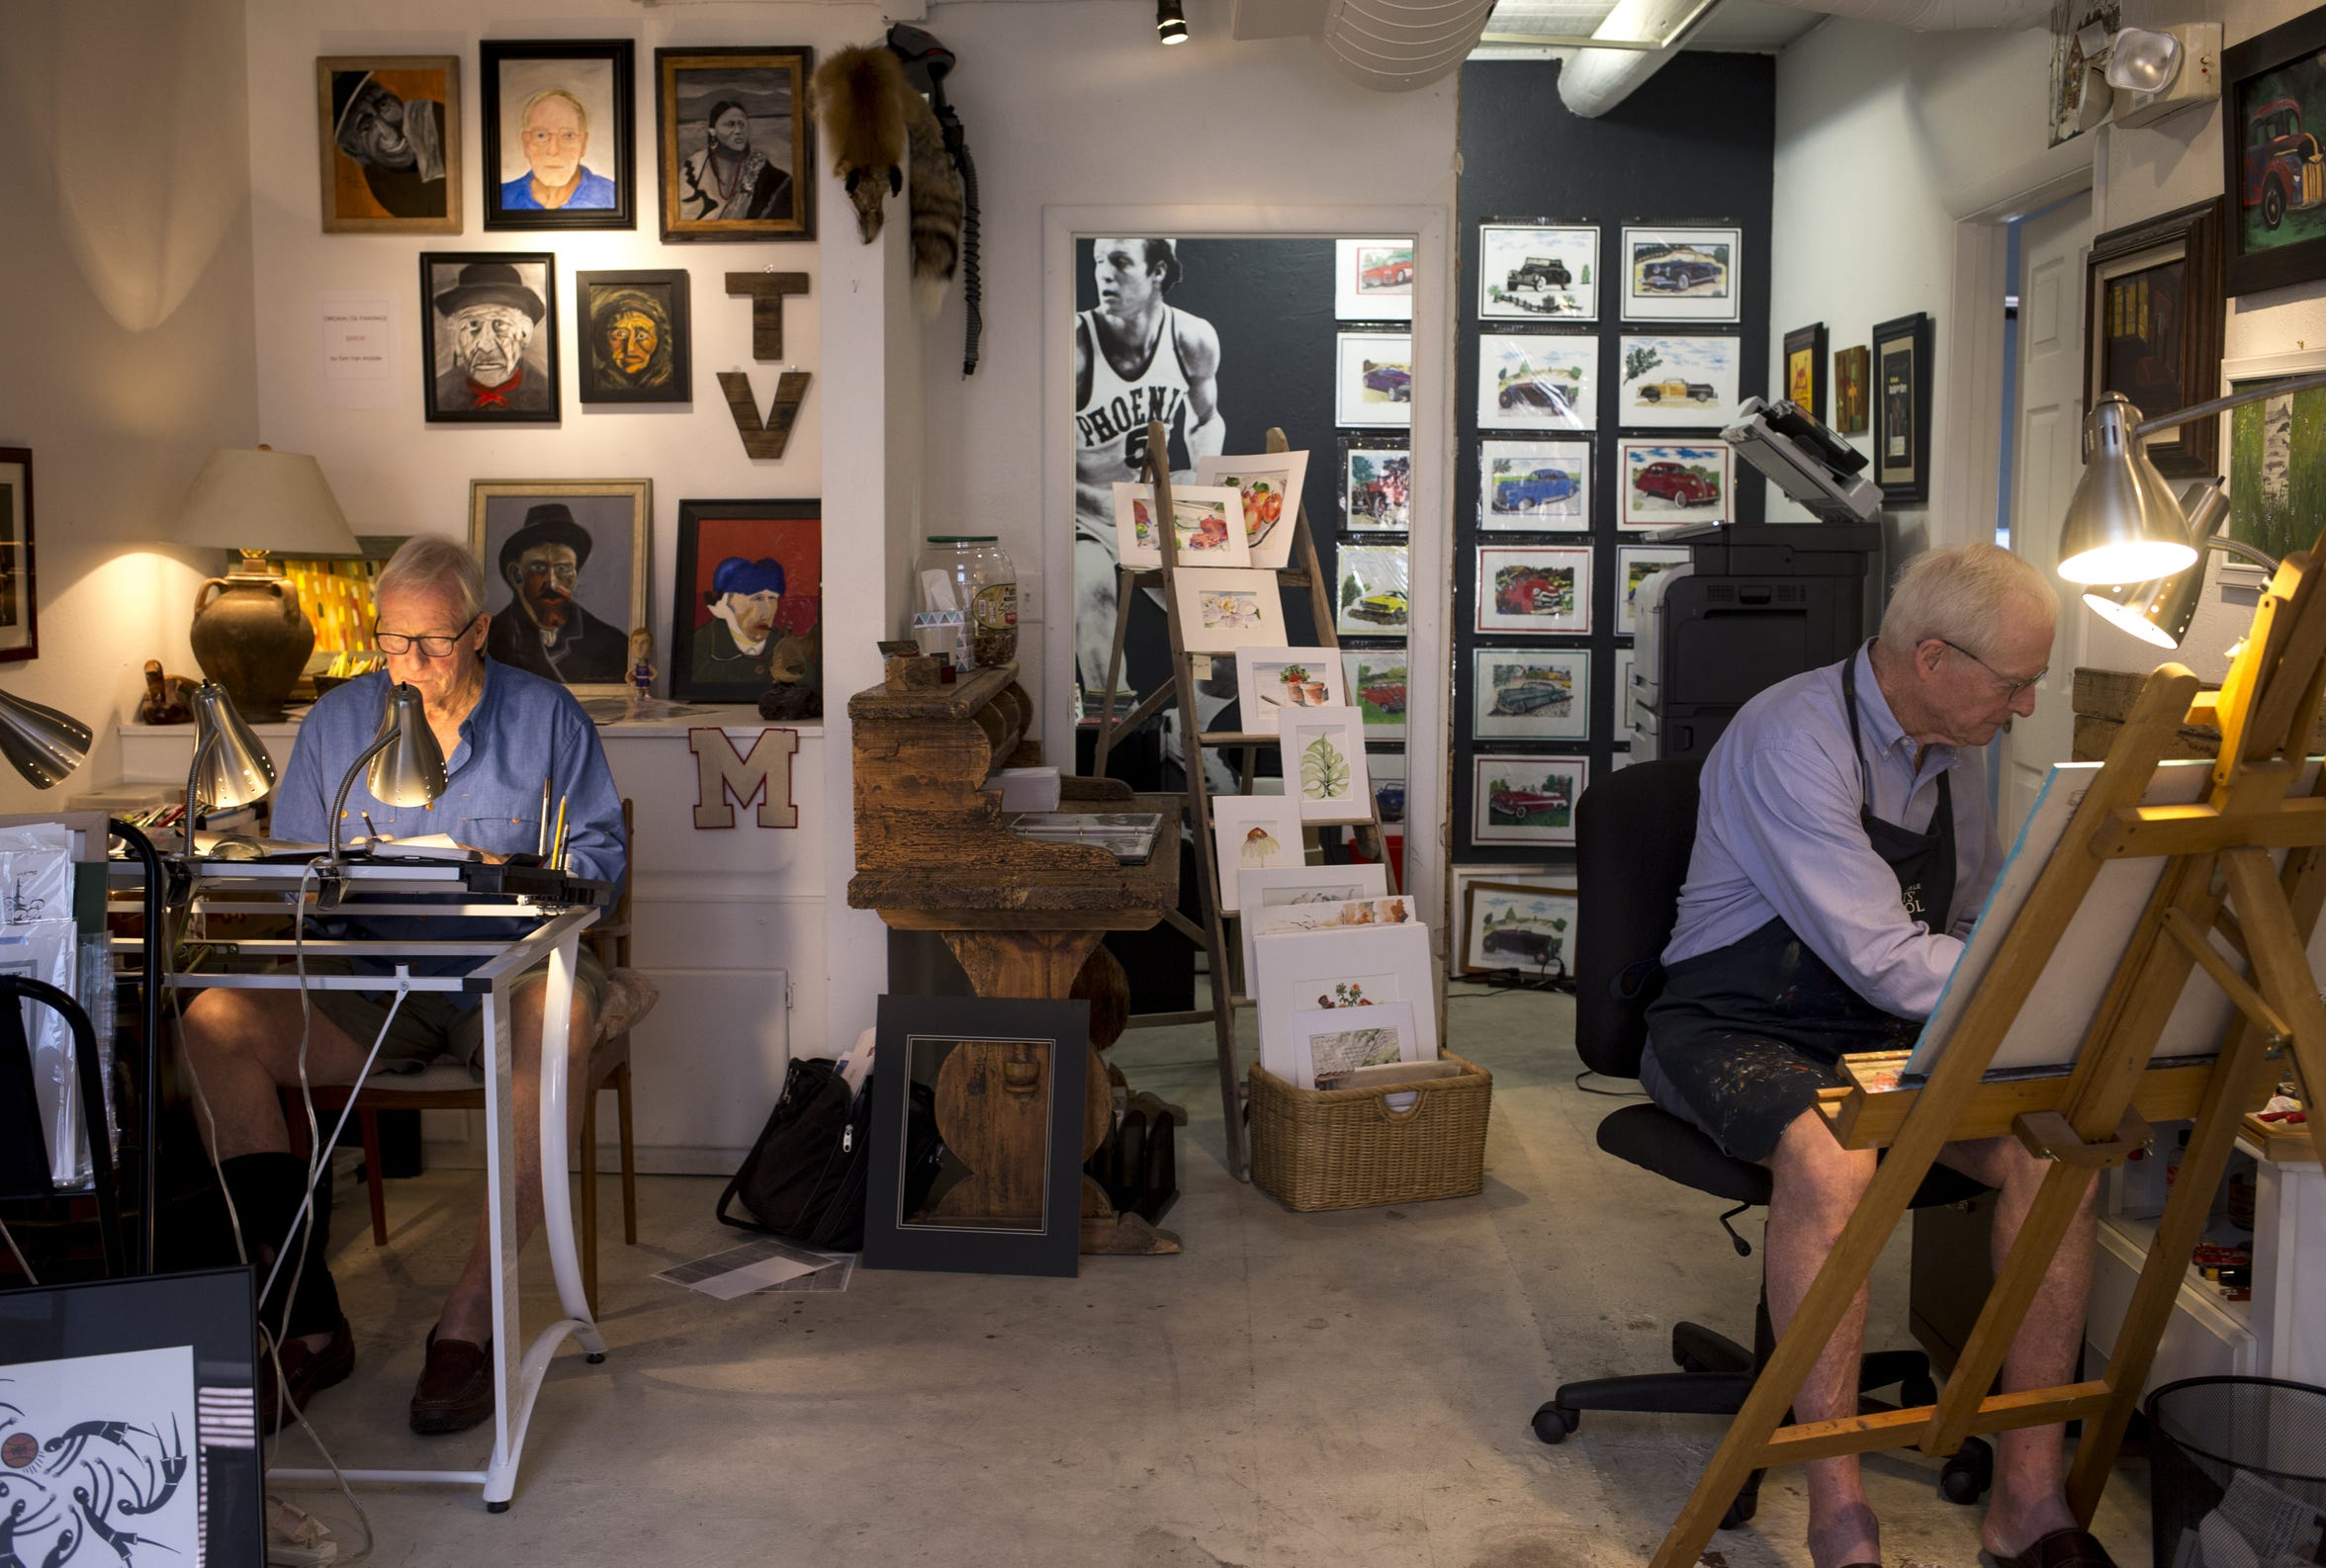 Dick (left) and Tom Van Arsdale work in their Scottsdale art studio in early October.